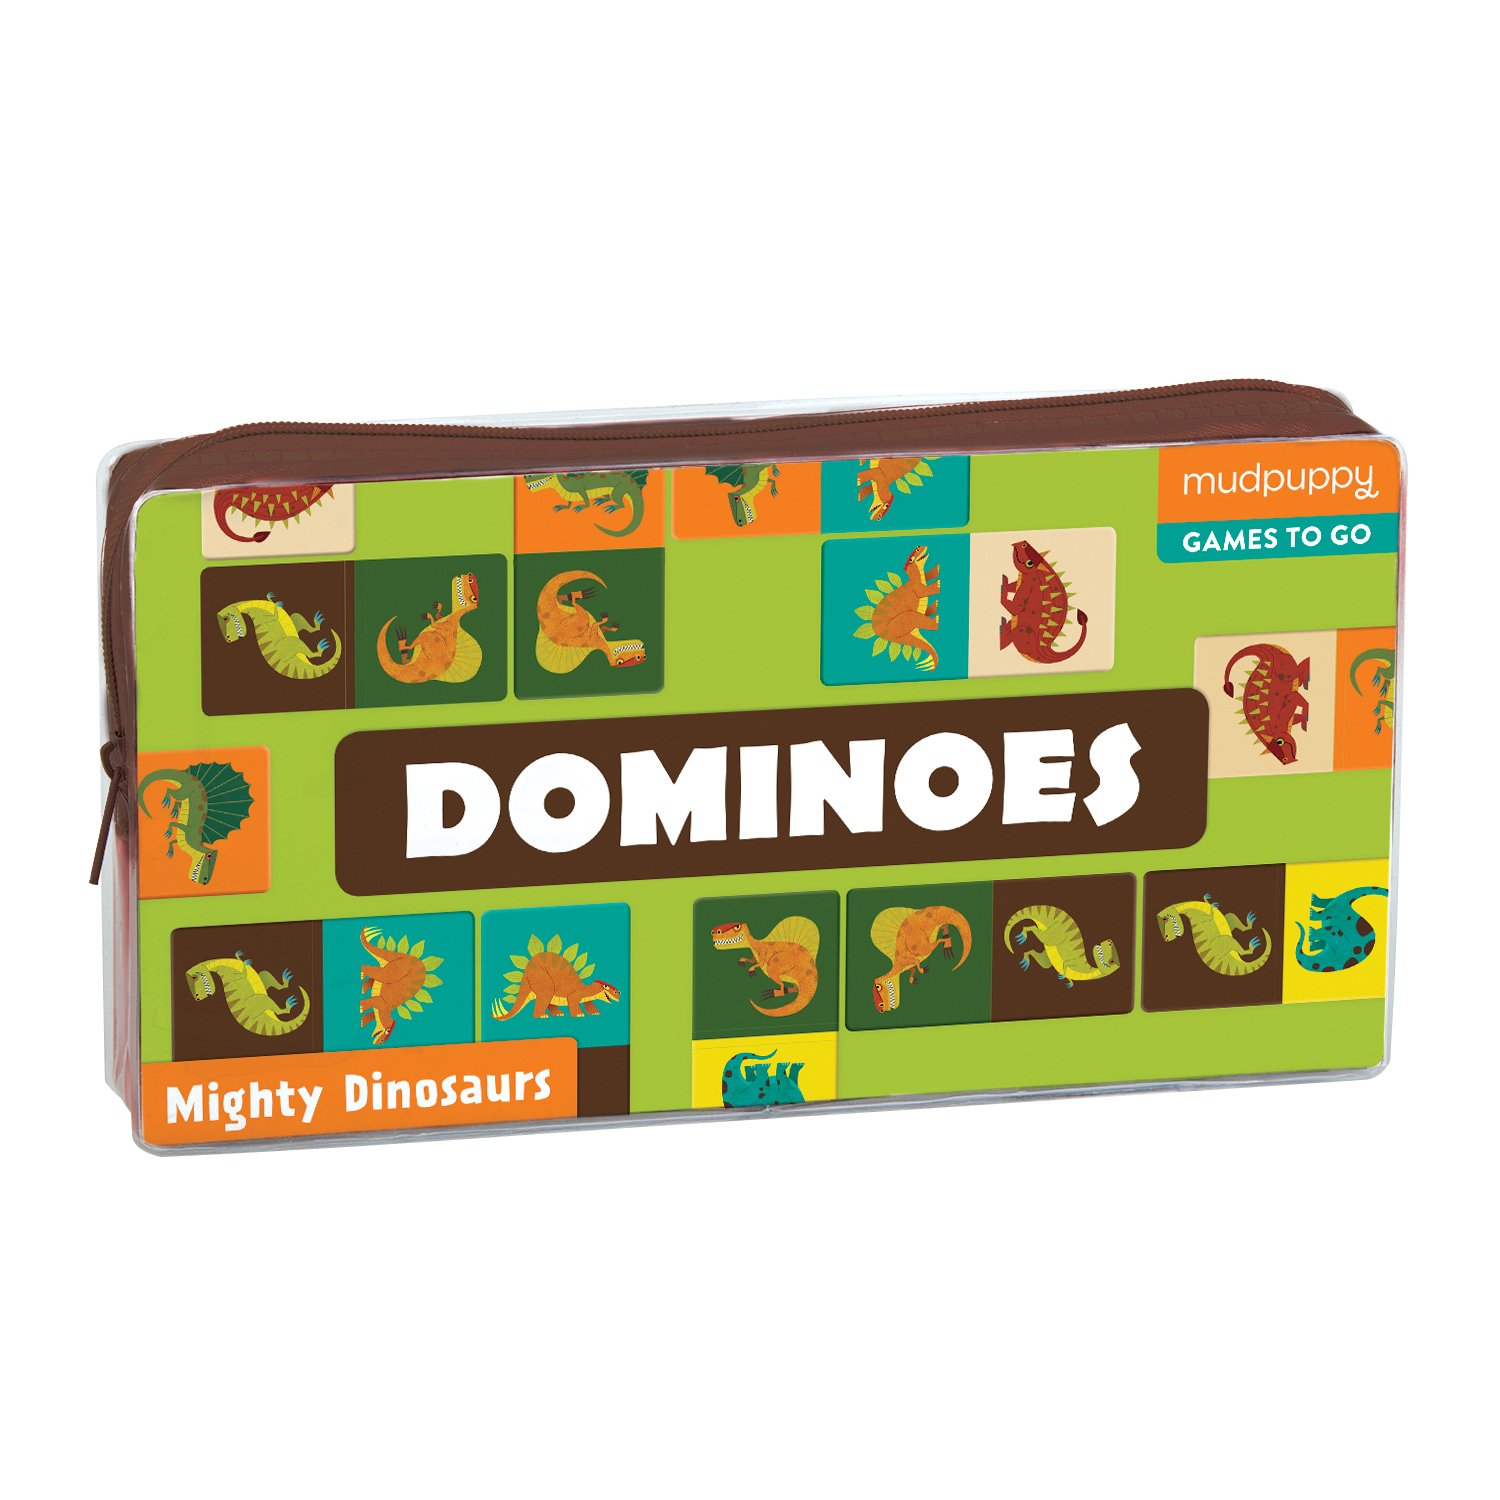 Joc - Games to go - Dominoes | Mudpuppy